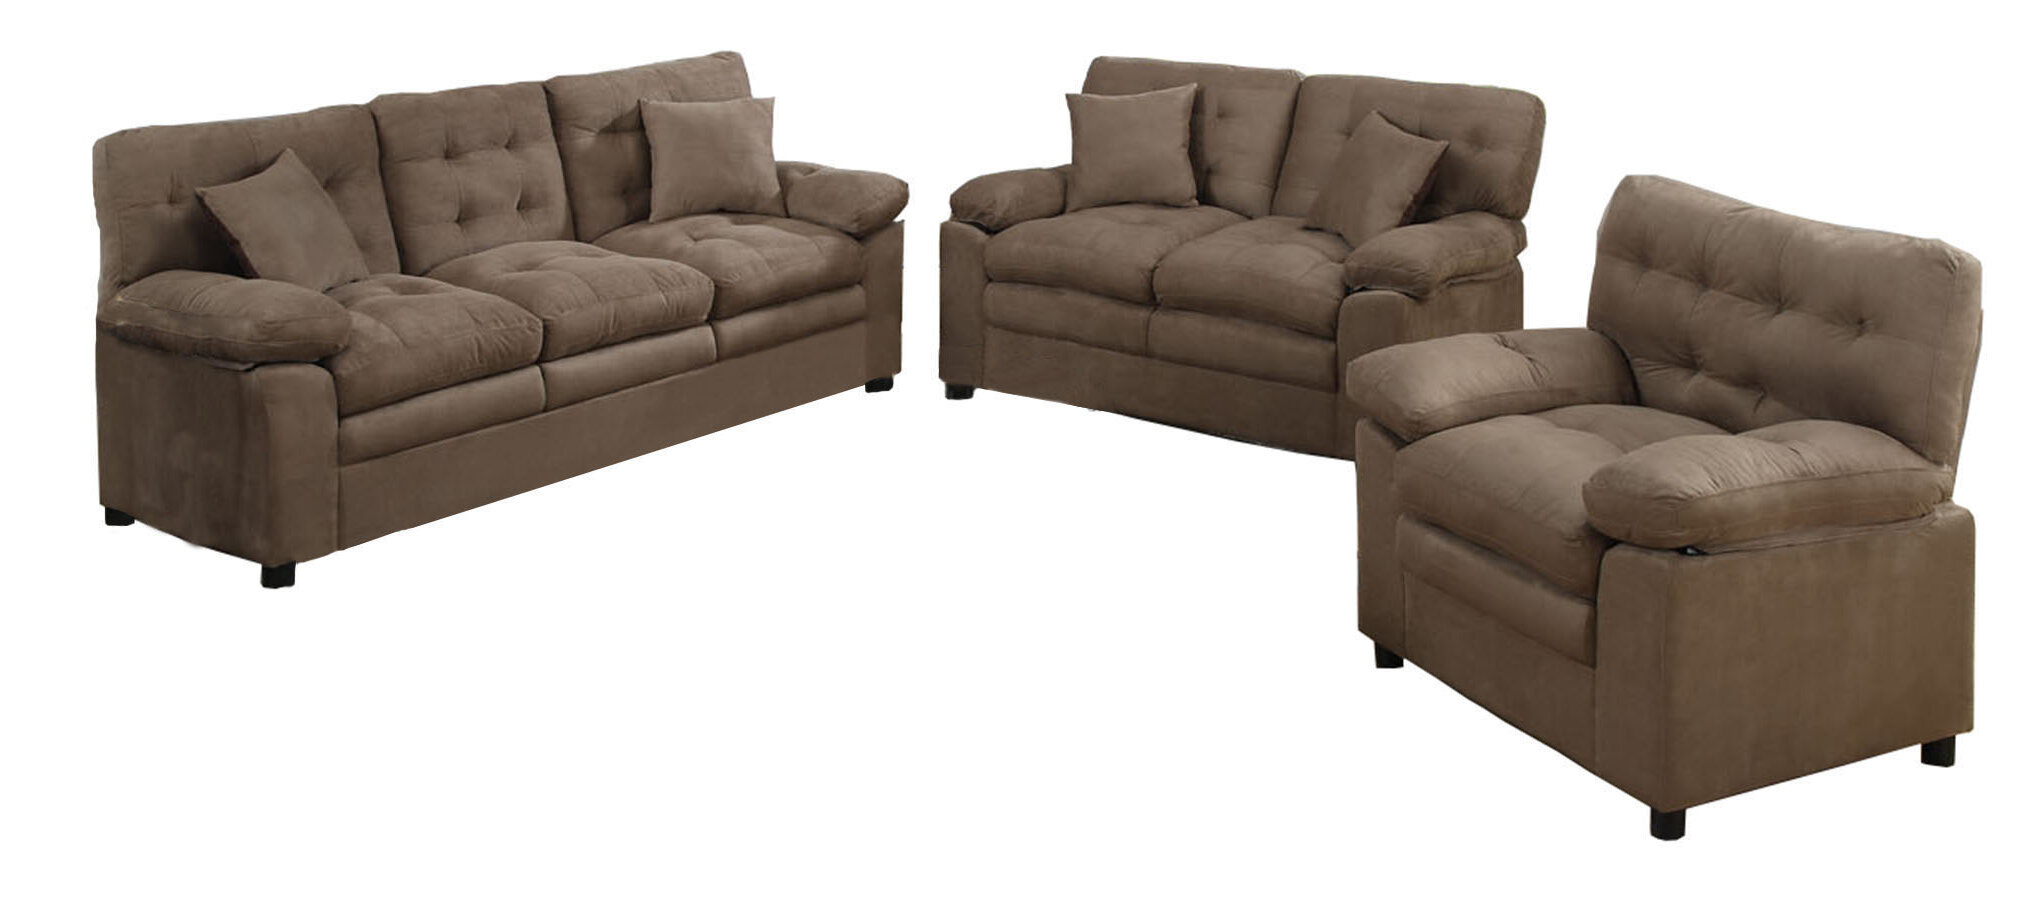 https://secure.img1-fg.wfcdn.com/im/28936355/compr-r85/3909/39096835/kingston-3-piece-living-room-set.jpg